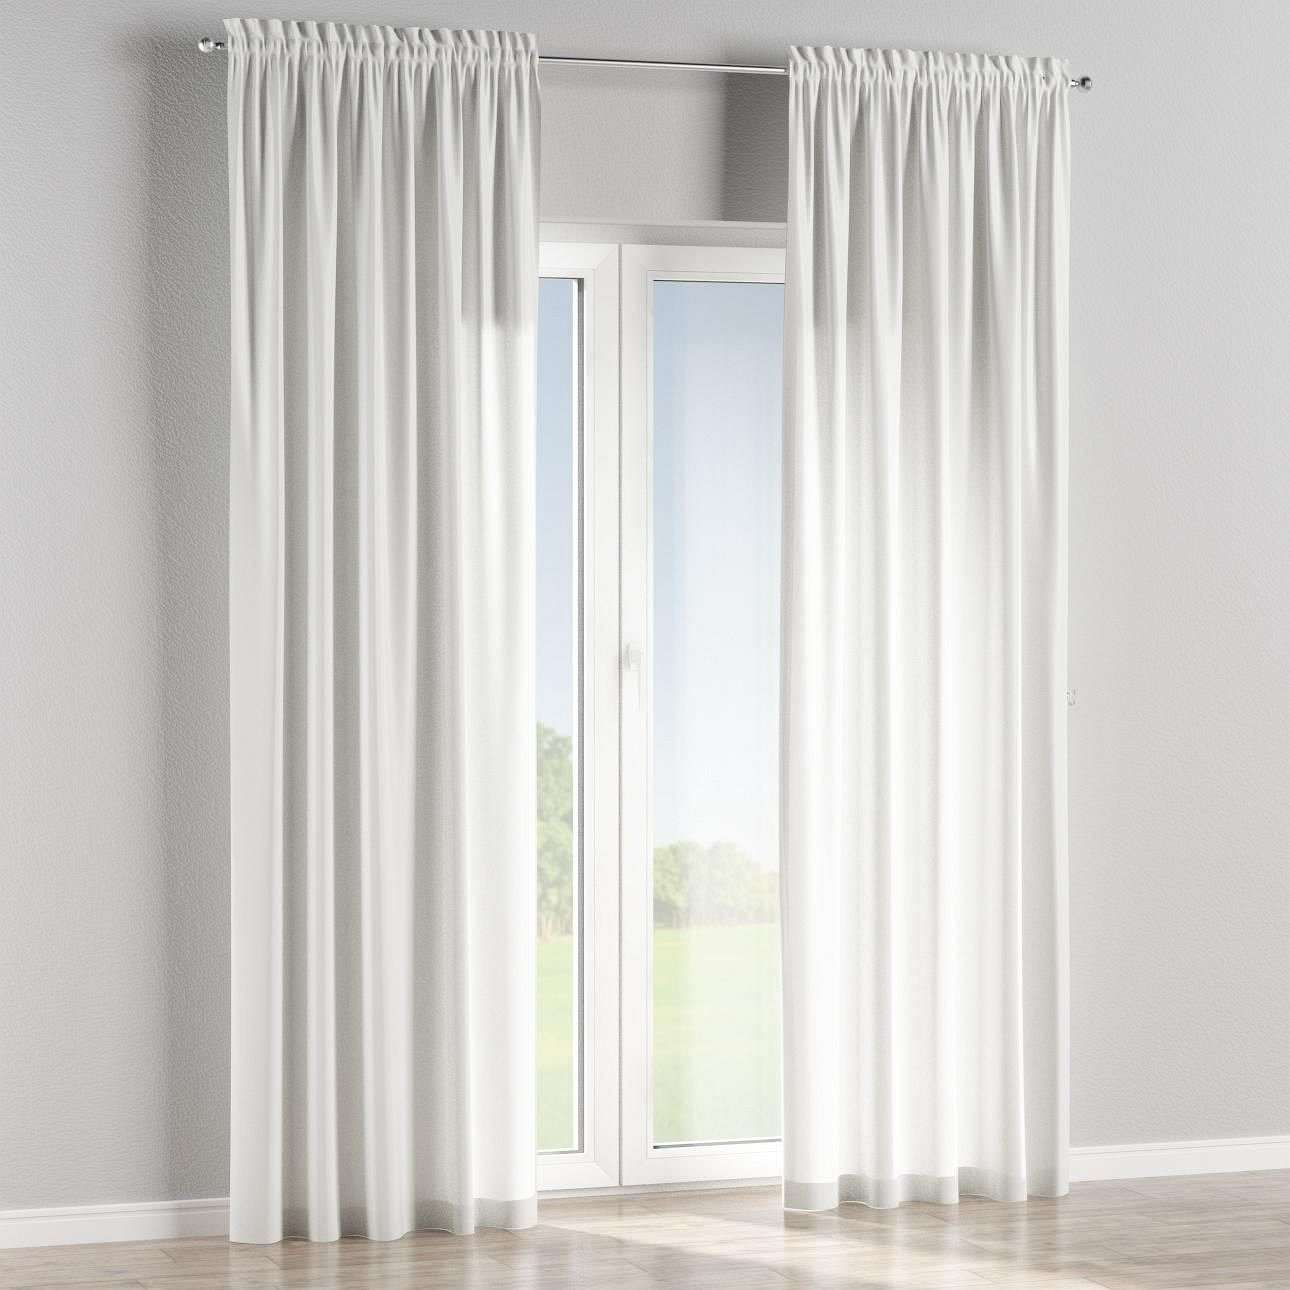 Slot and frill curtains in collection SALE, fabric: 126-48